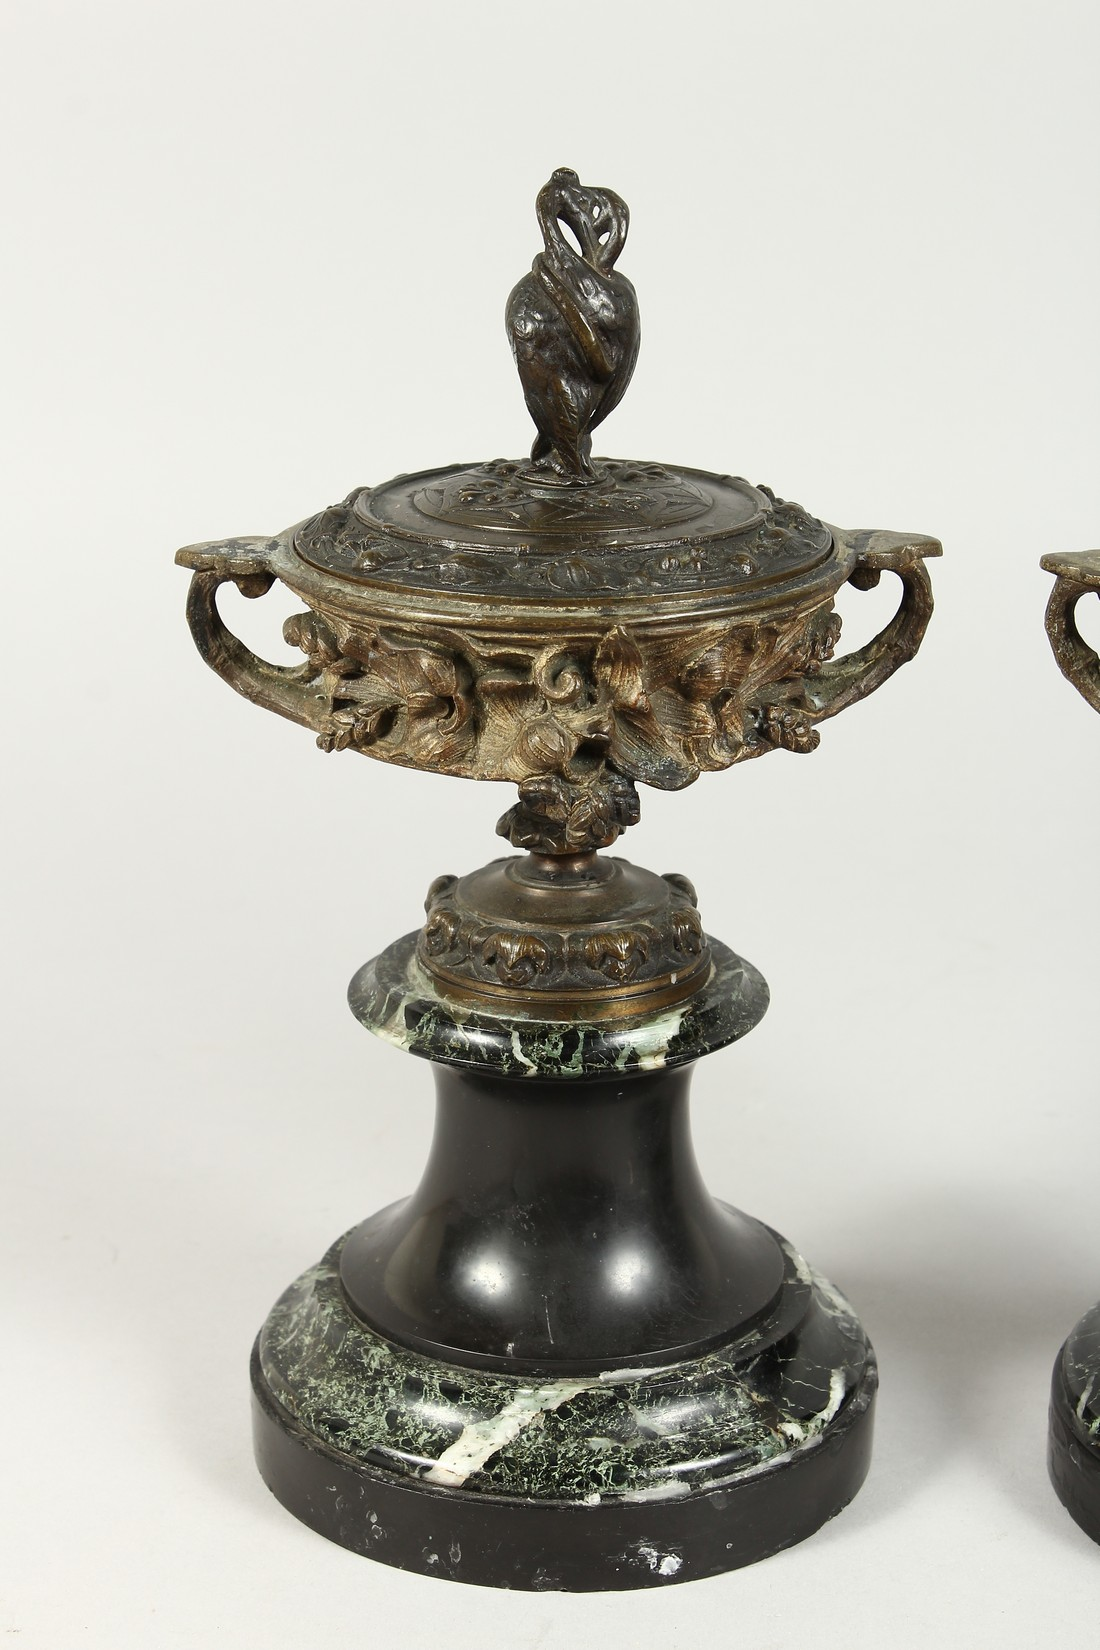 A PAIR OF BRONZE TWO HANDLED URNS AND COVERS on circular marble bases. 10ins high. - Image 2 of 6